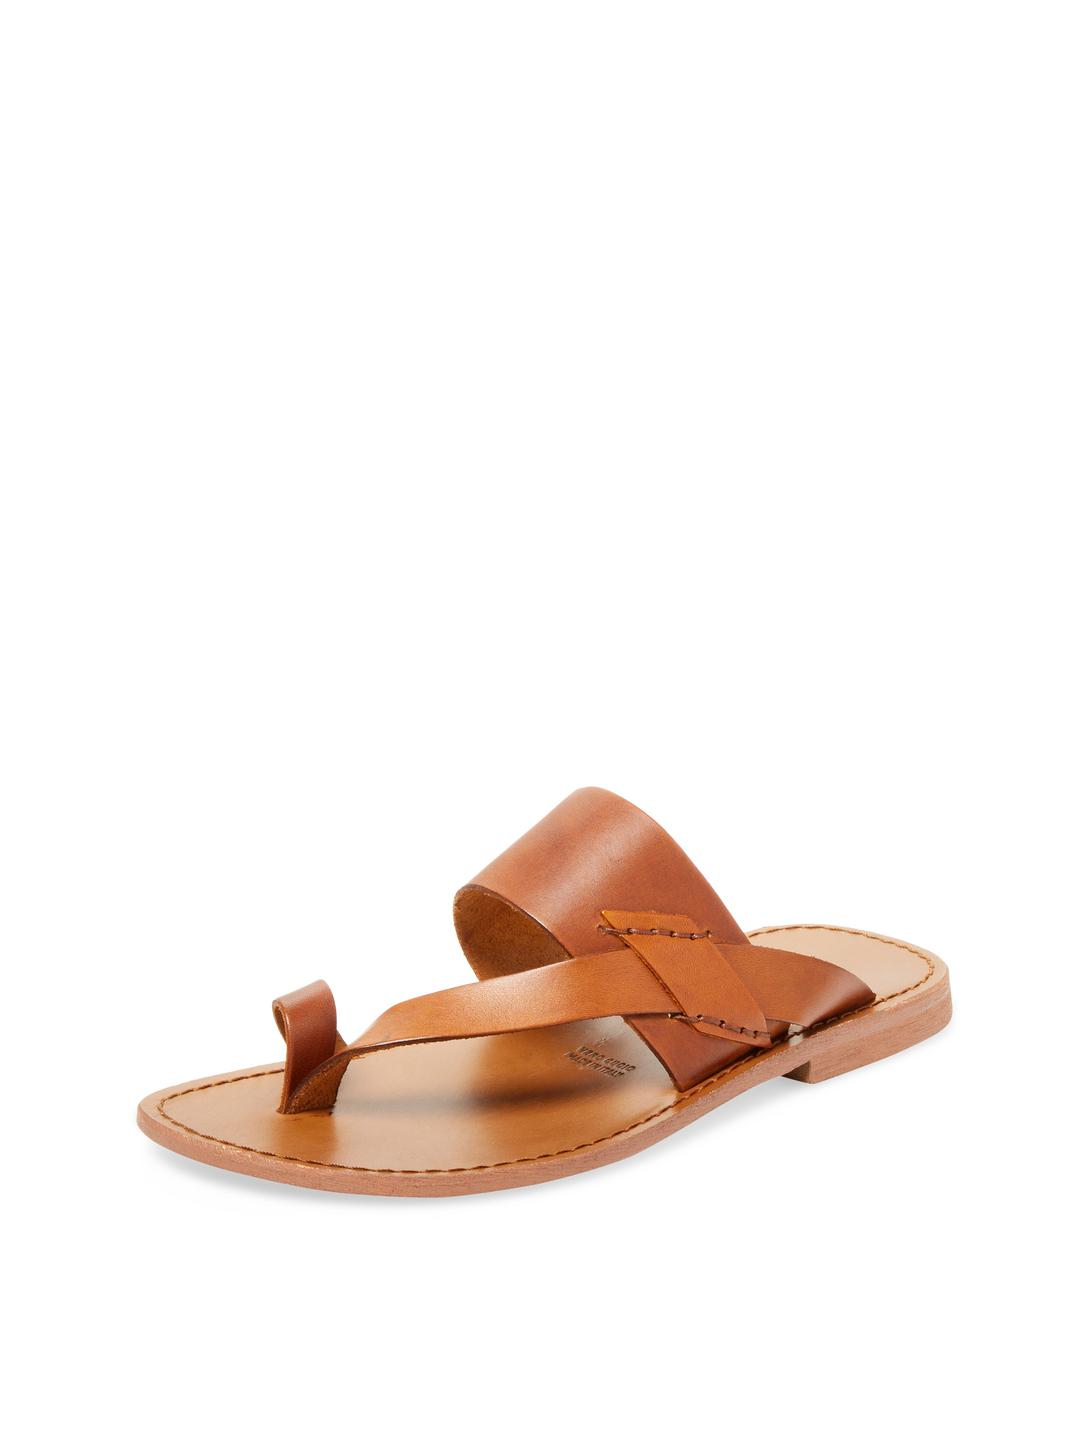 1629be2f901 Lyst - Miramare Italia Toe Ring Thong Sandal in Brown